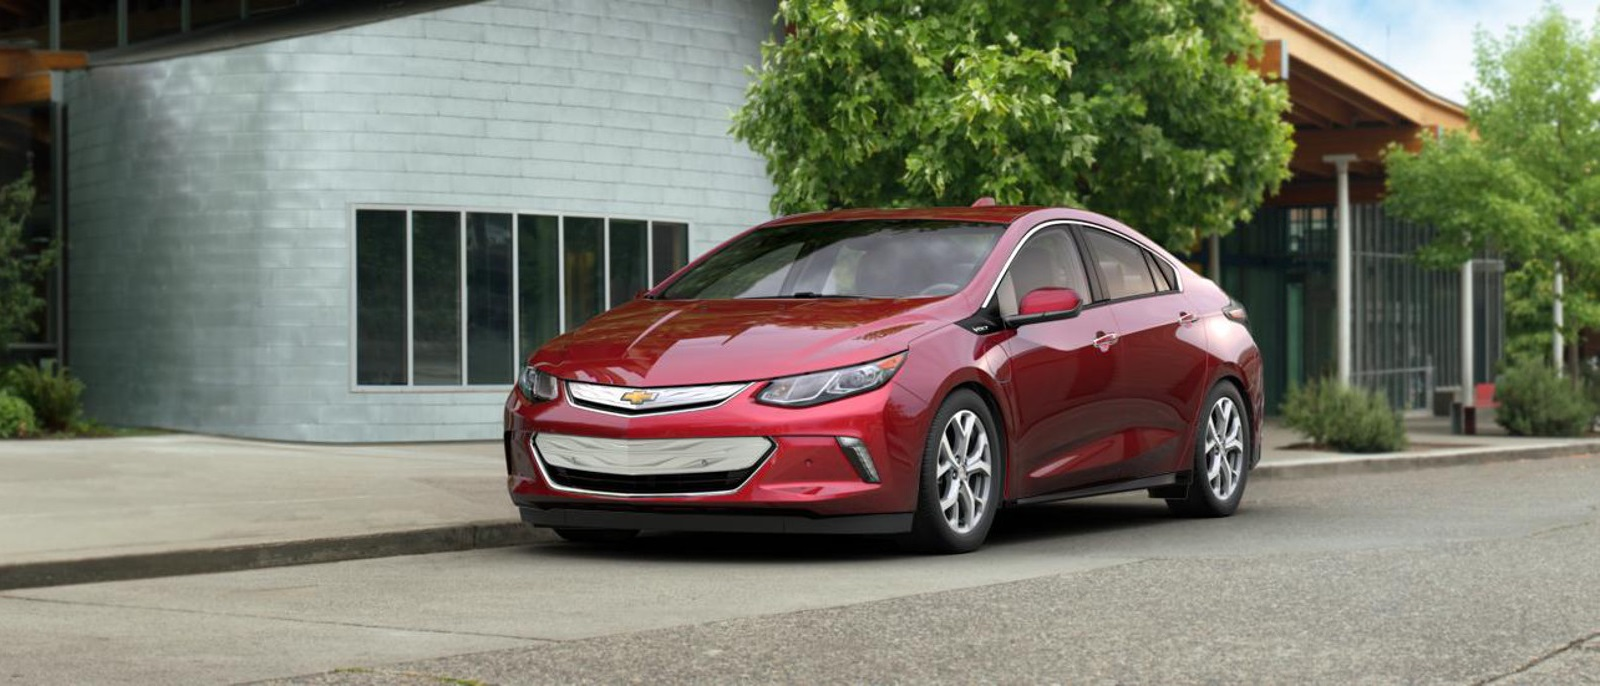 2018 Chevy Volt Release Date >> 2018 Chevrolet Volt Changes And Release Date Florence Covington